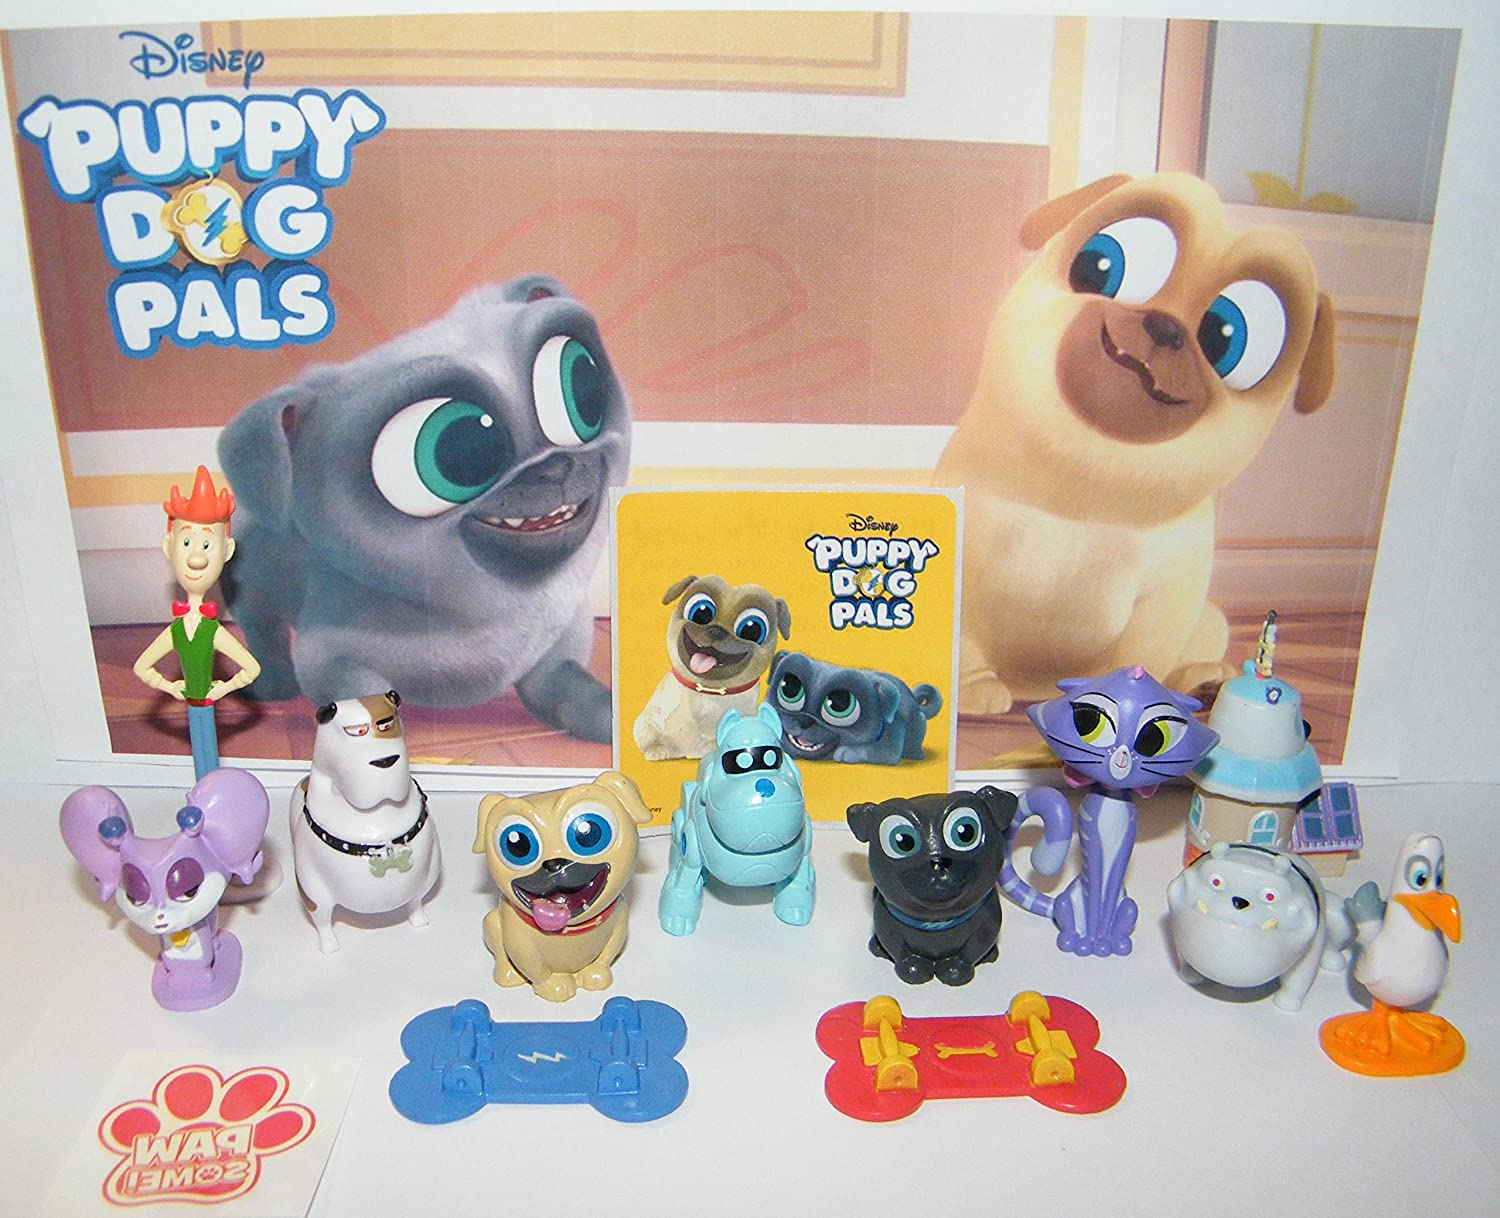 Party Time Pals Sticker and PAW Tattoo Featuring Rolly 2 Skateboards Bingo and All Friends Disney Puppy Dog Pals Deluxe Party Favors Goody Bag Fillers Set of 14 with 10 Figures